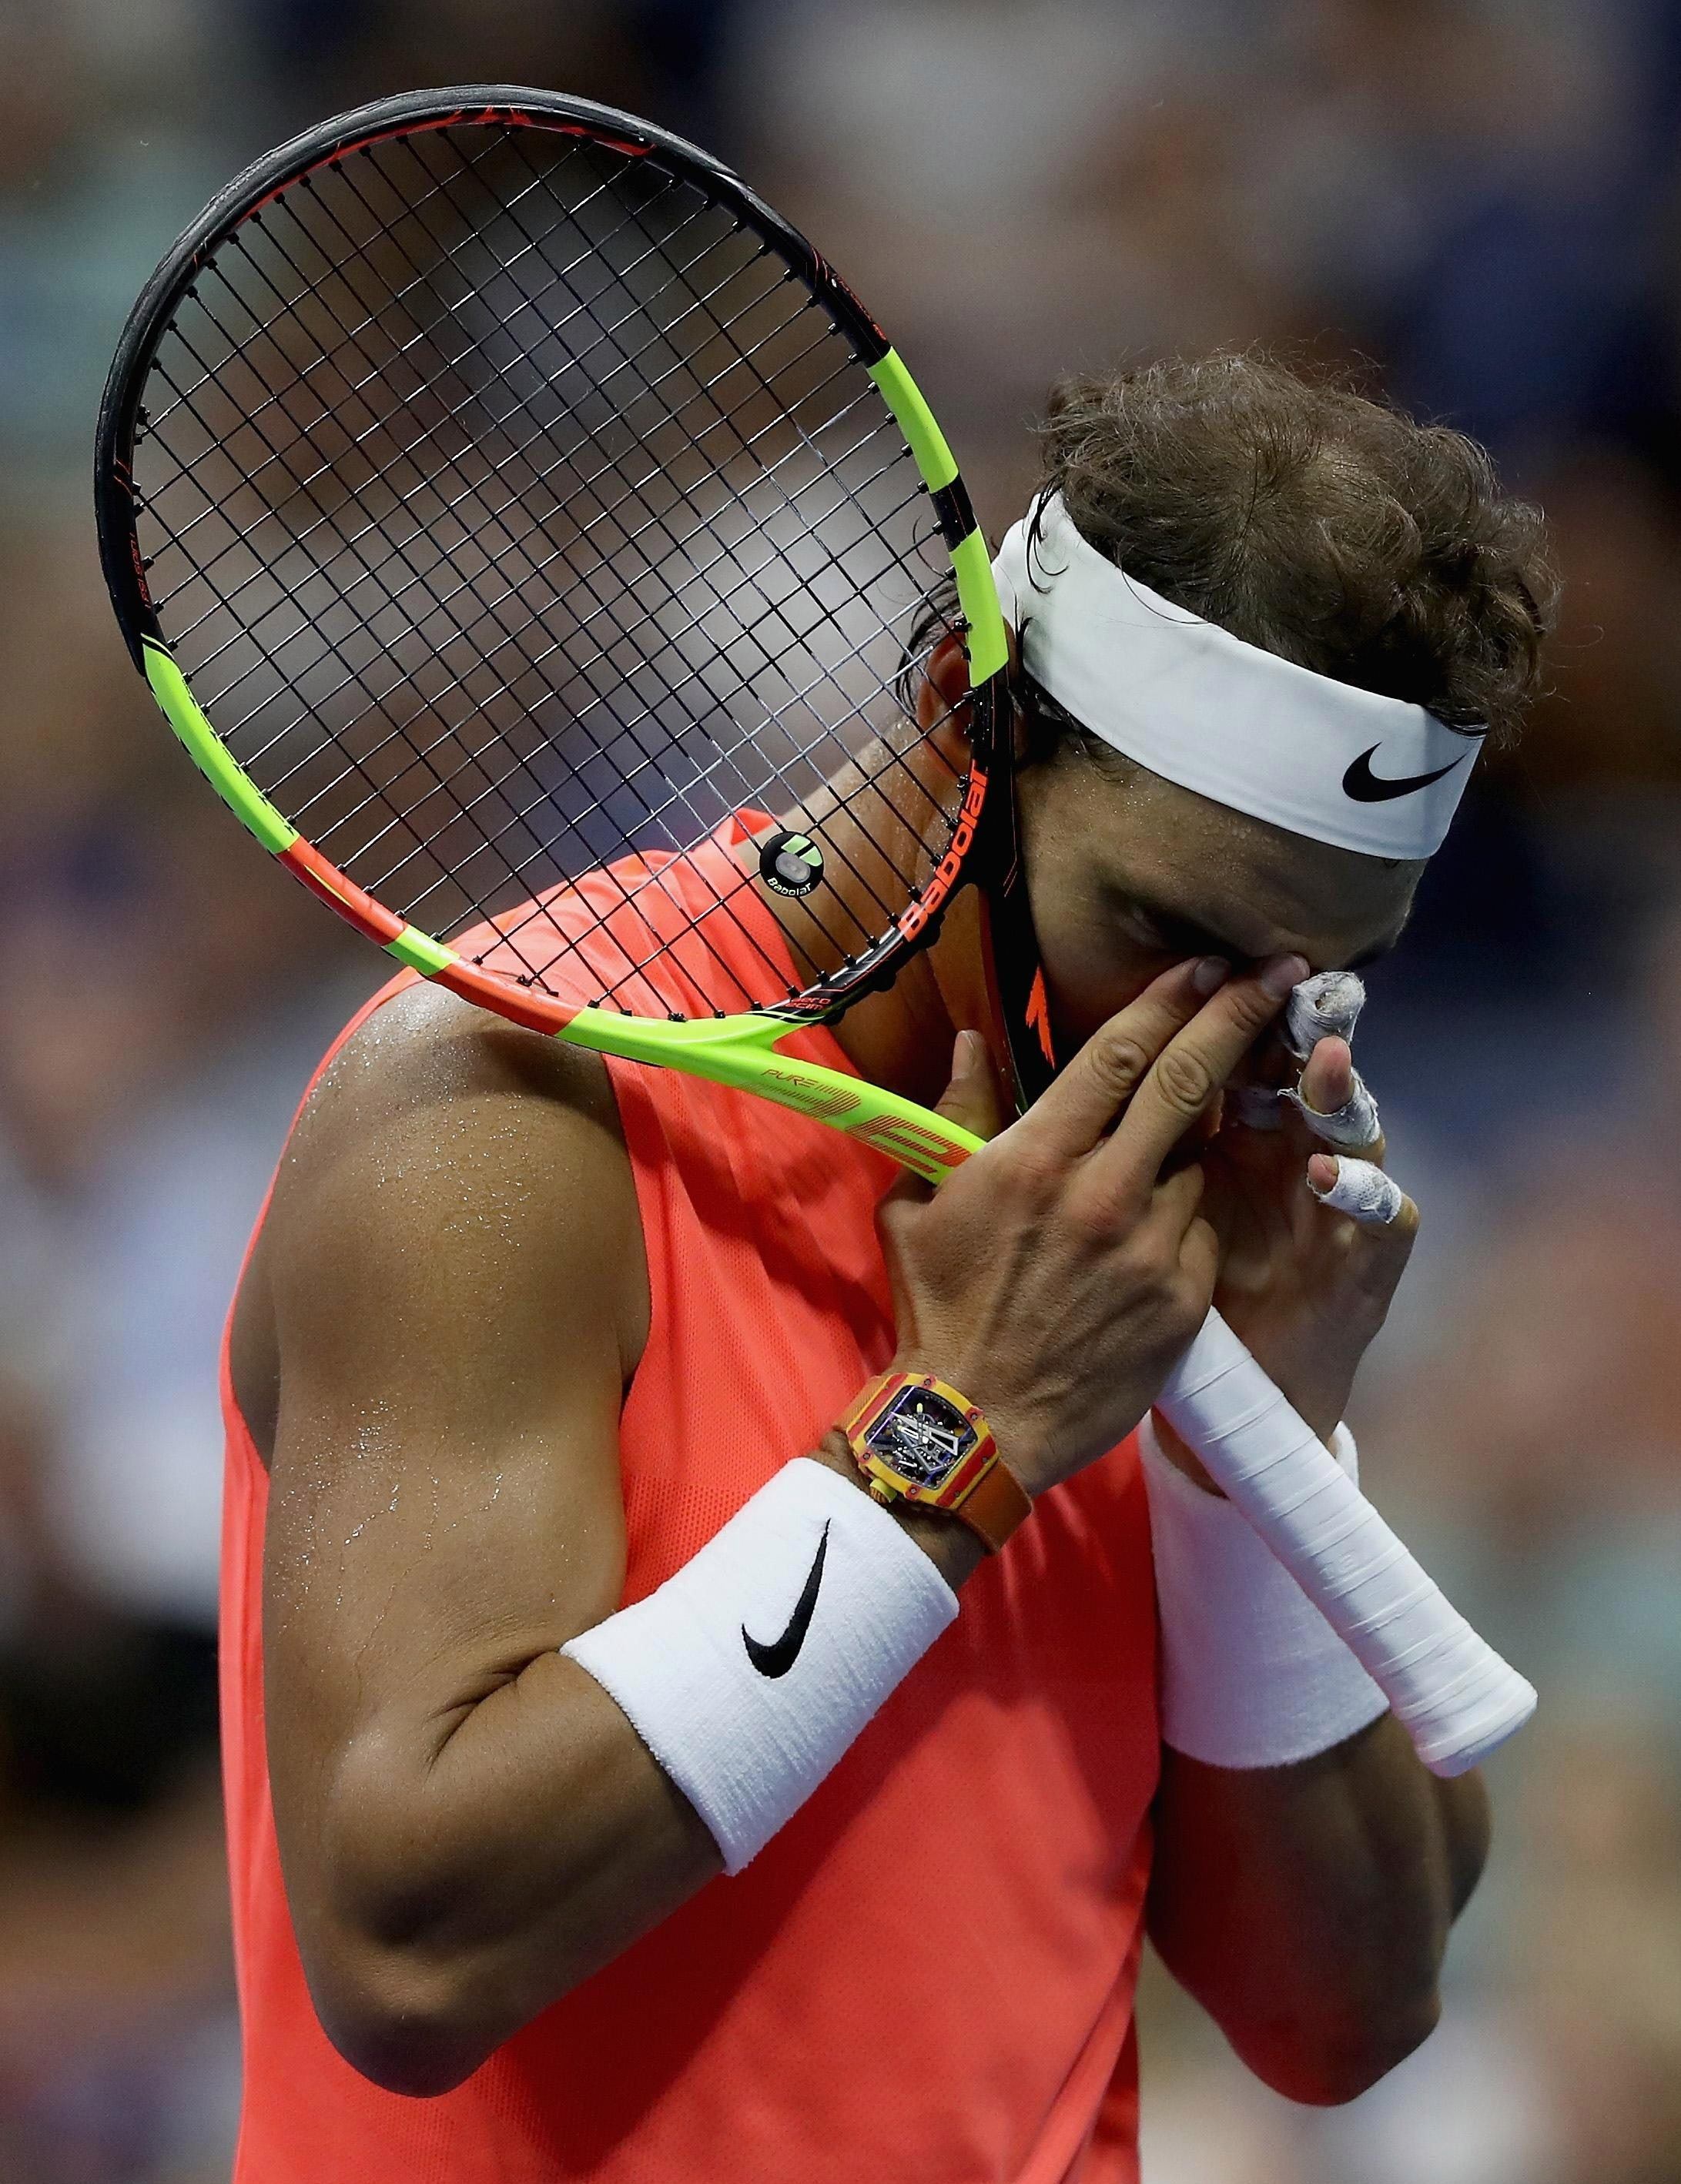 Nadal was a set and a break down to the 22-year-old Russian star before coming back to get the win